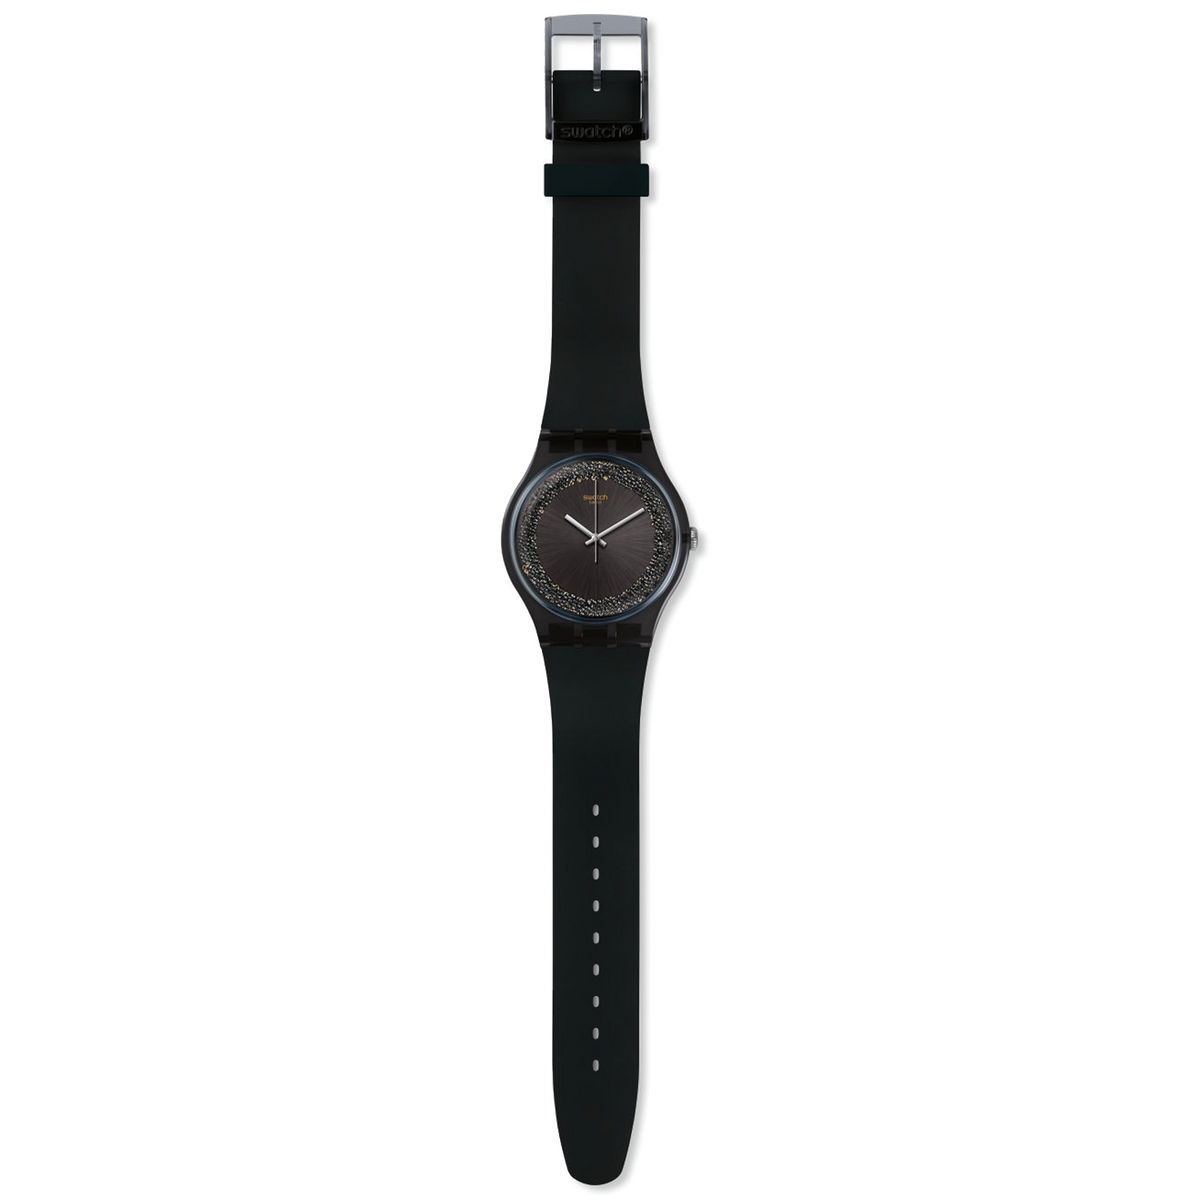 Swatch Watch 41mm - Dark Sparkles